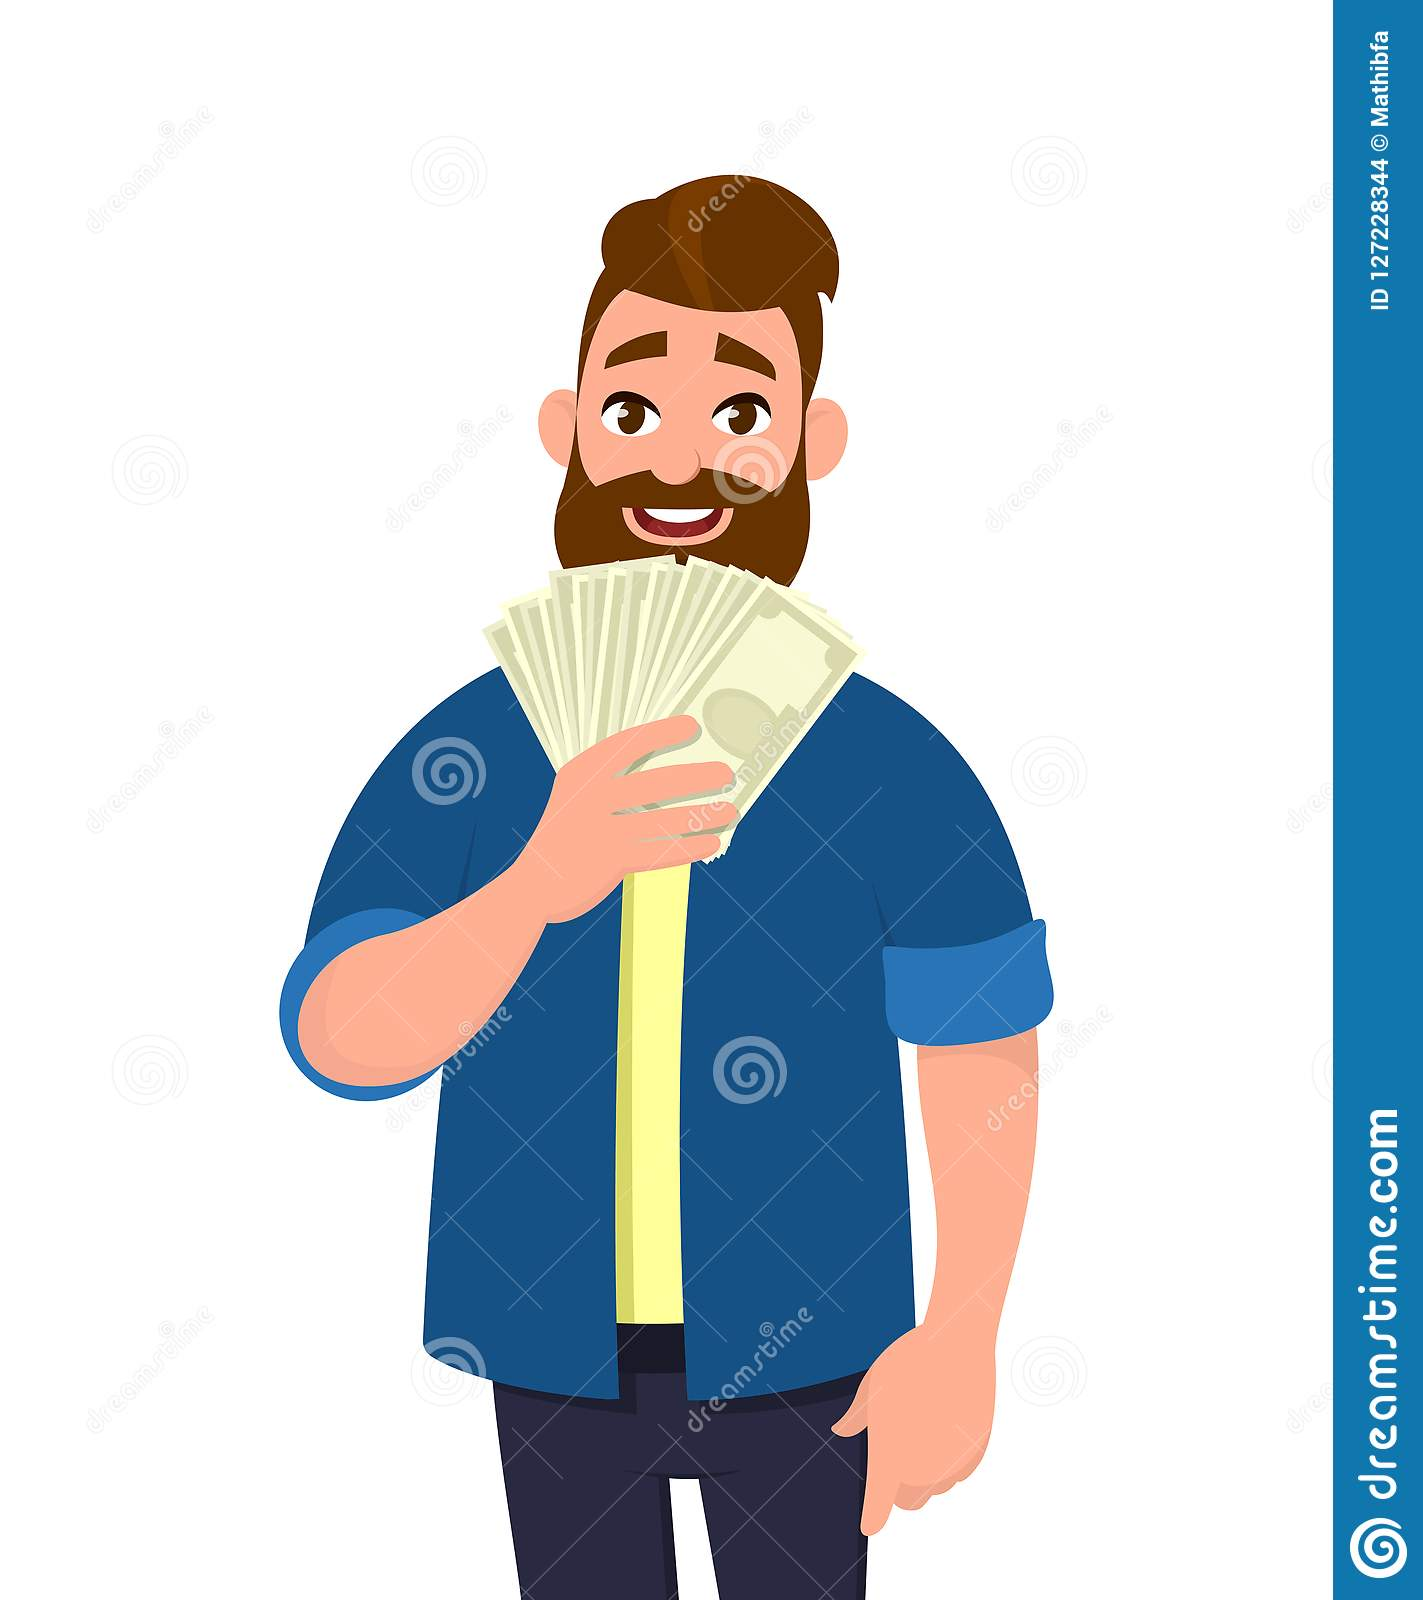 Happy young man holding cash/money/banknotes. Financial money concept. Human emotion and body language concept illustration.